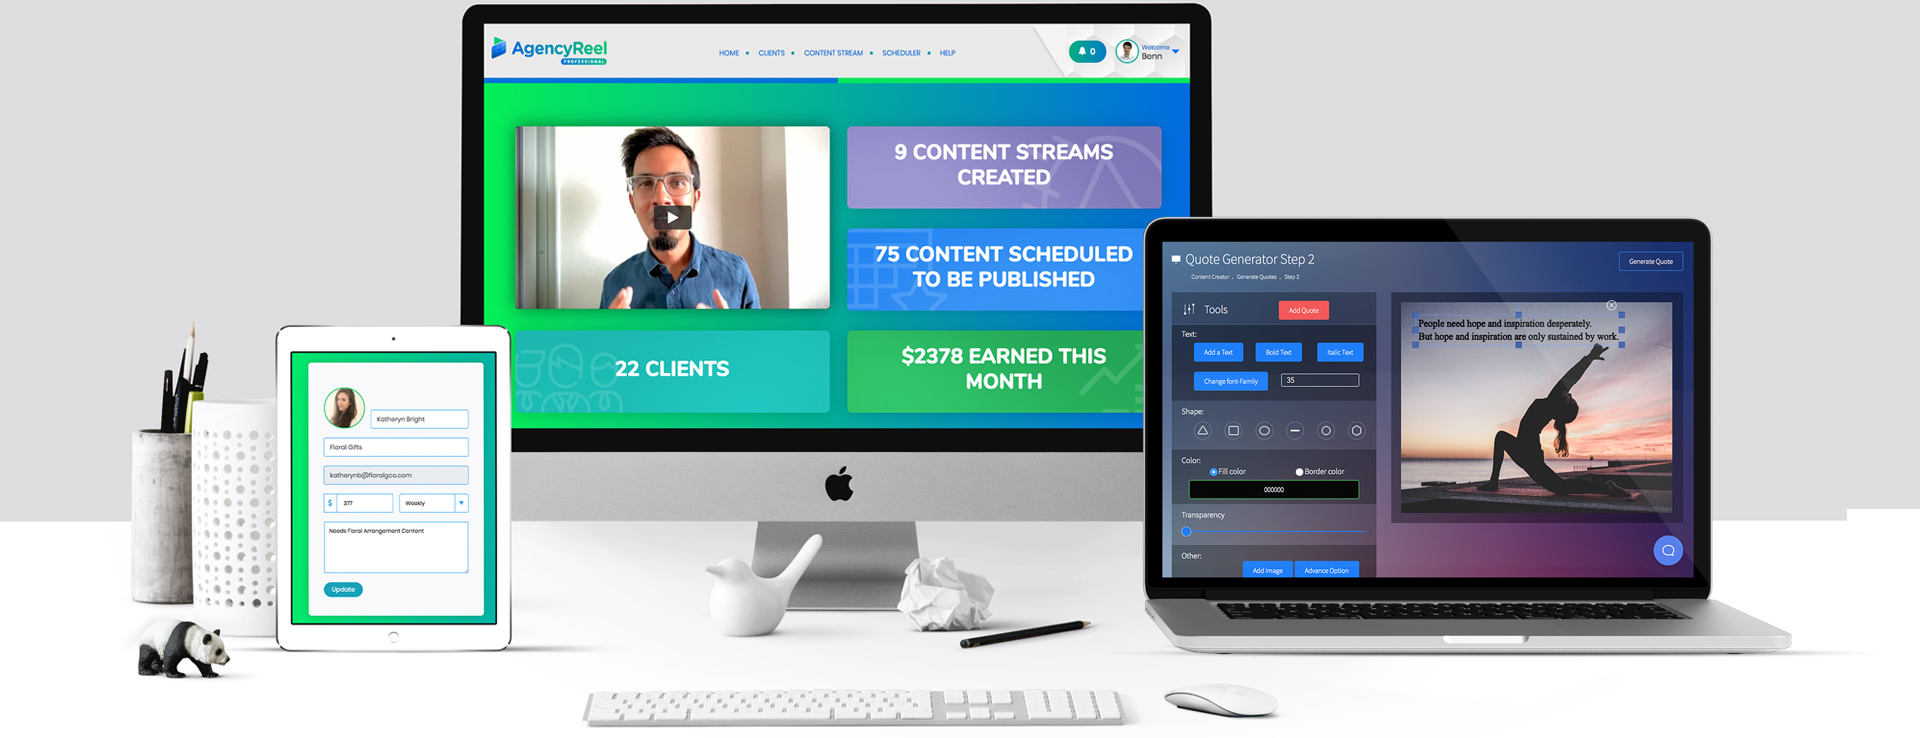 LocalReputor Review + Discount Coupon & Huge bonuses worth $2.5K + Features, Pros & Cons + OTO Details + The First Big Reputation Management Software